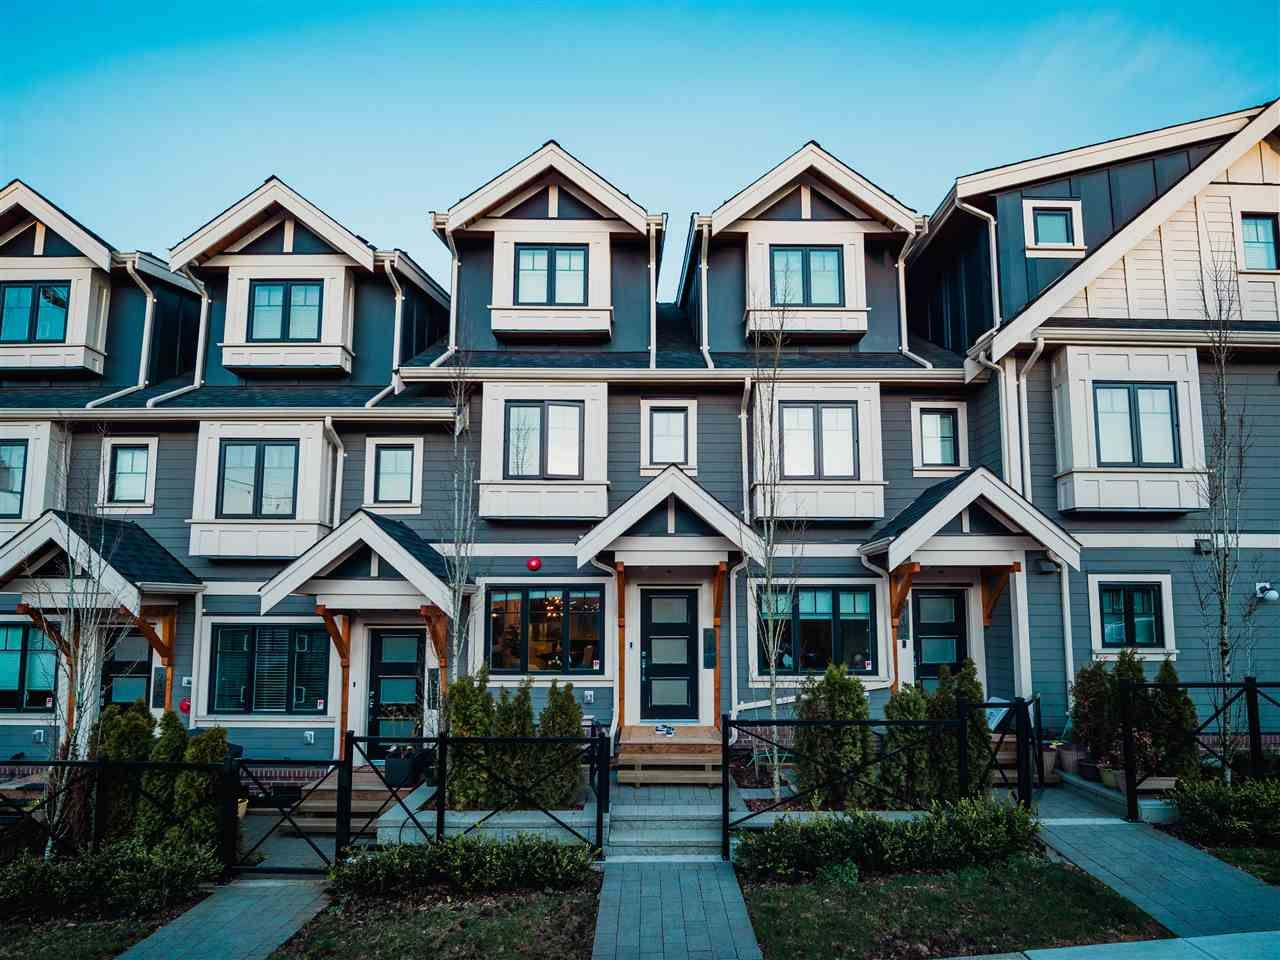 """Main Photo: 2488 ST. CATHERINES Street in Vancouver: Mount Pleasant VE Townhouse for sale in """"Bravo"""" (Vancouver East)  : MLS®# R2443783"""